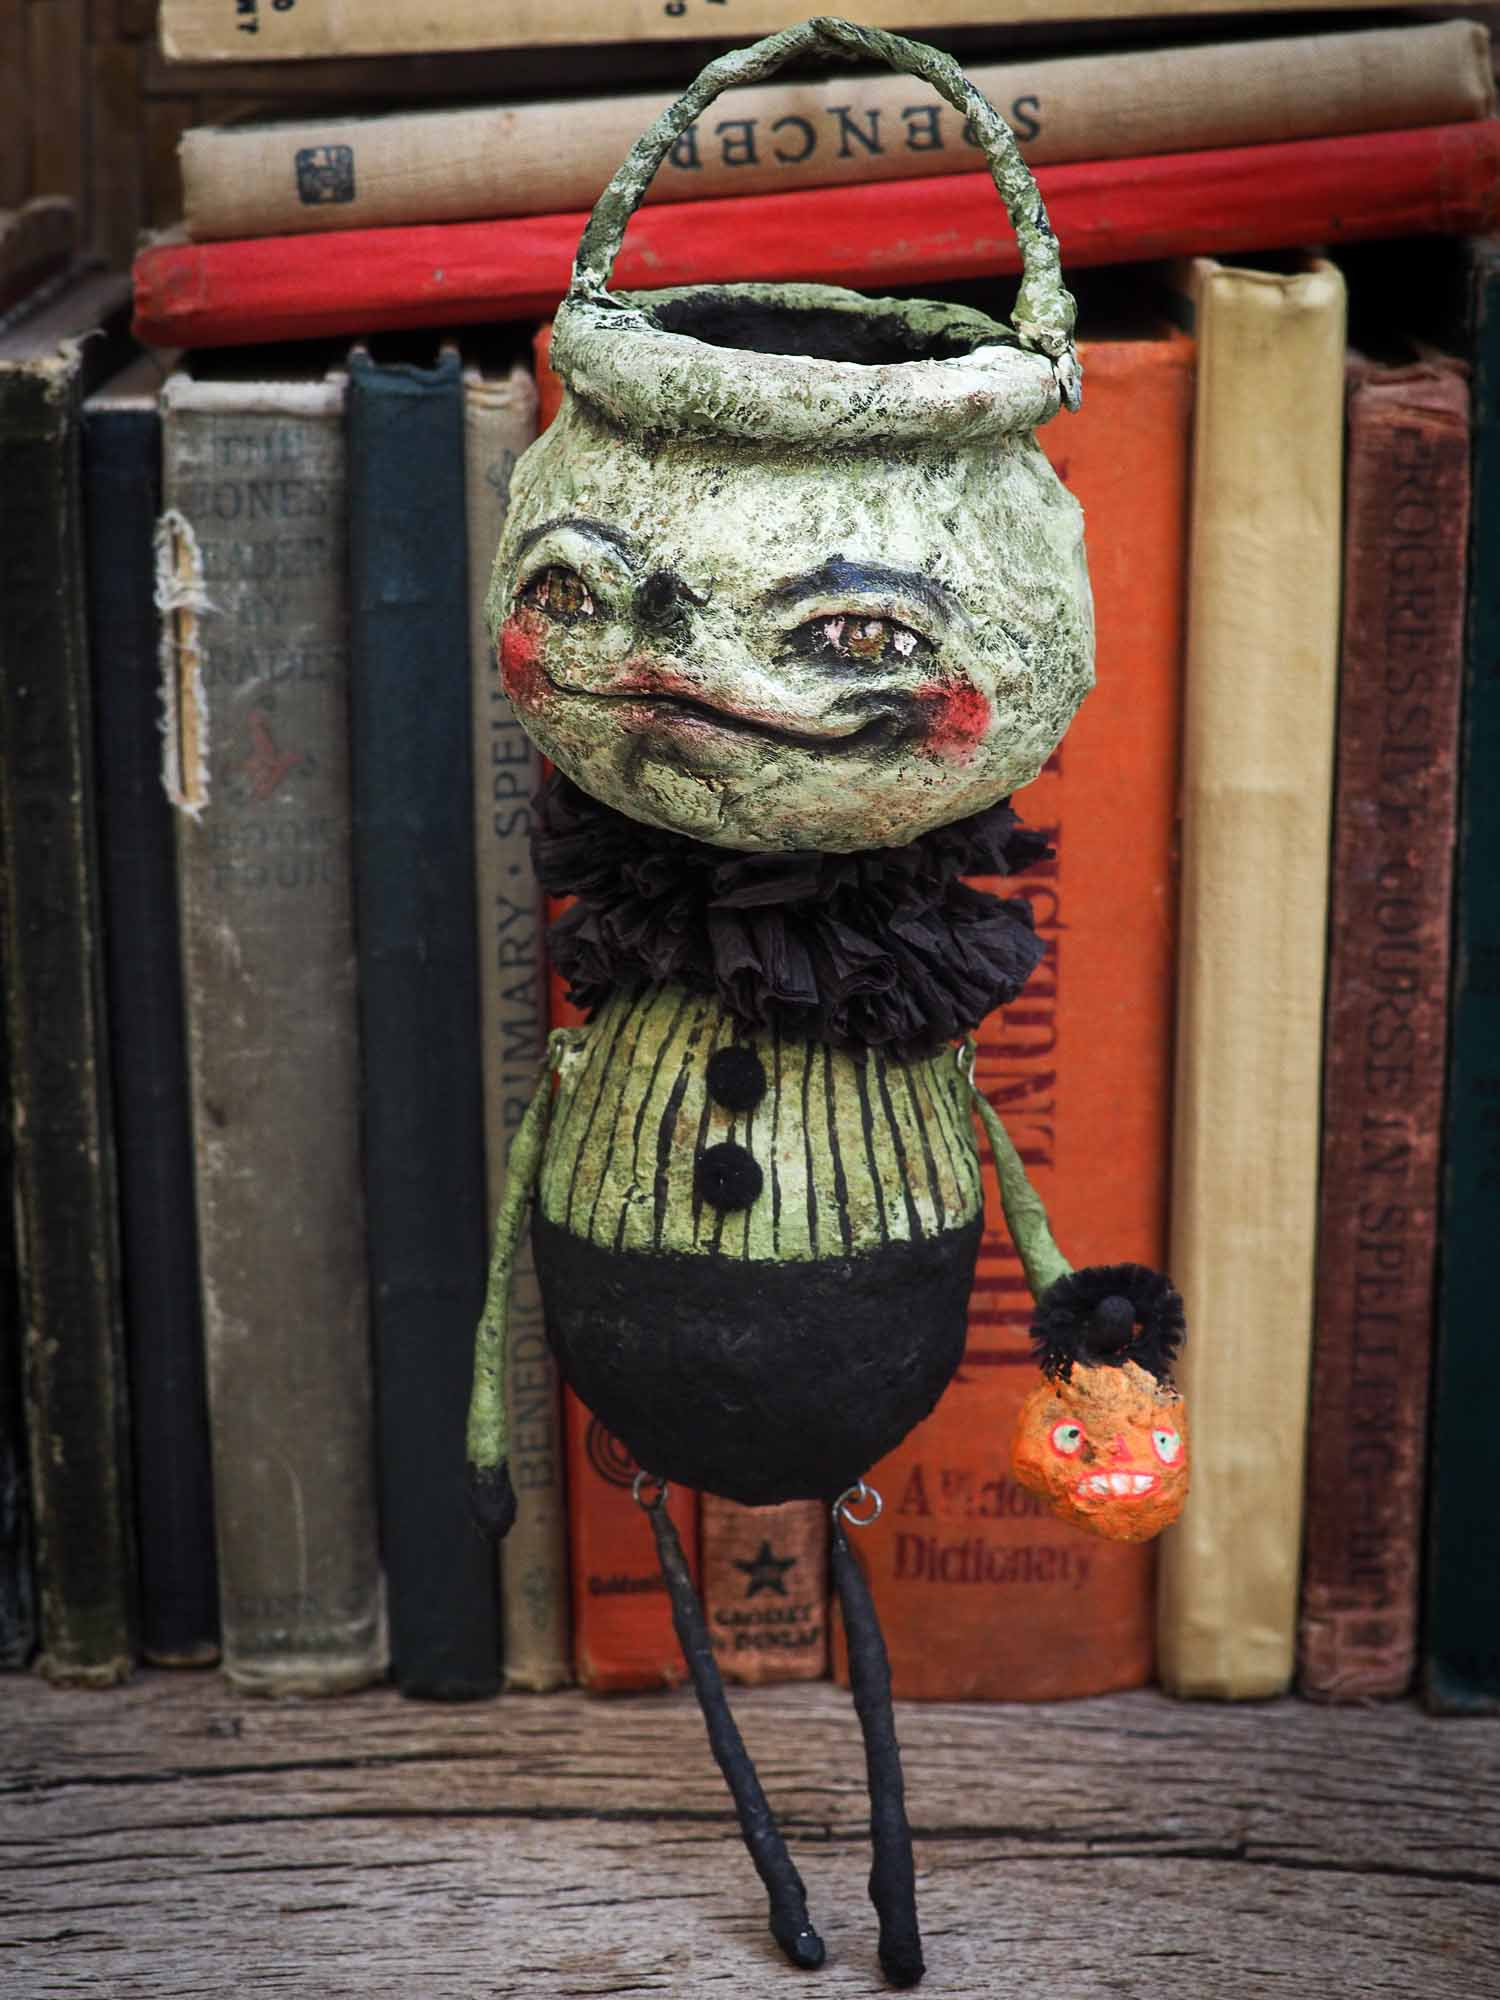 Handmade Halloween ornament posable doll by Danita. It is handmade using spun cotton and paper clay to make a whimsical Halloween home decor decoration